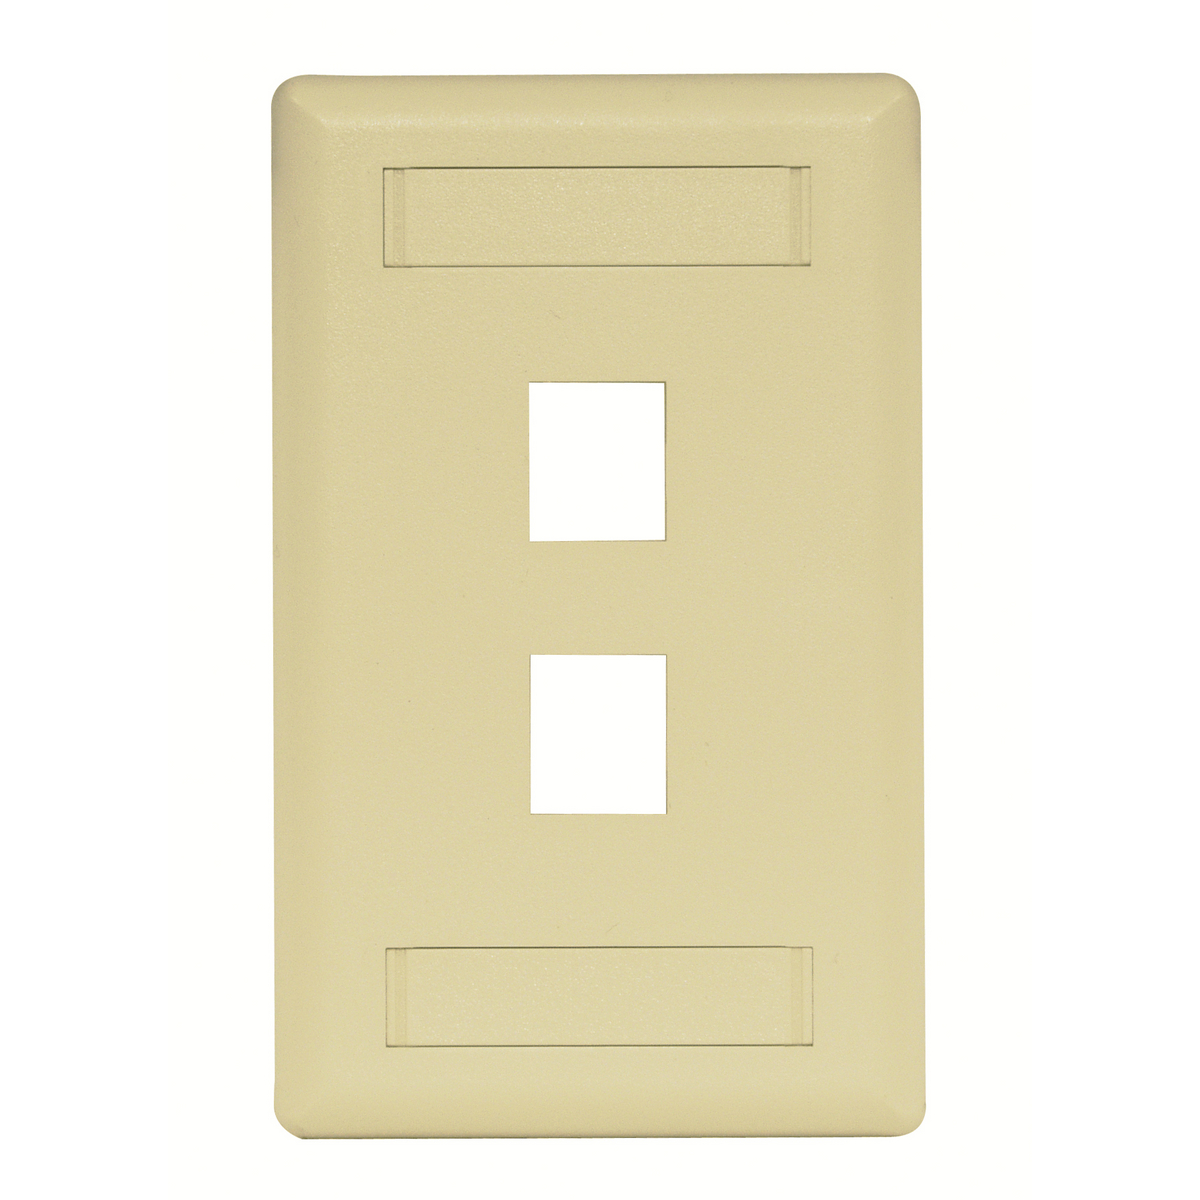 HUBPR IFP12EI PLATE, WALL, FLUSH, 1-G, 2PORT, EI 2 port single gang faceplate electric ivory